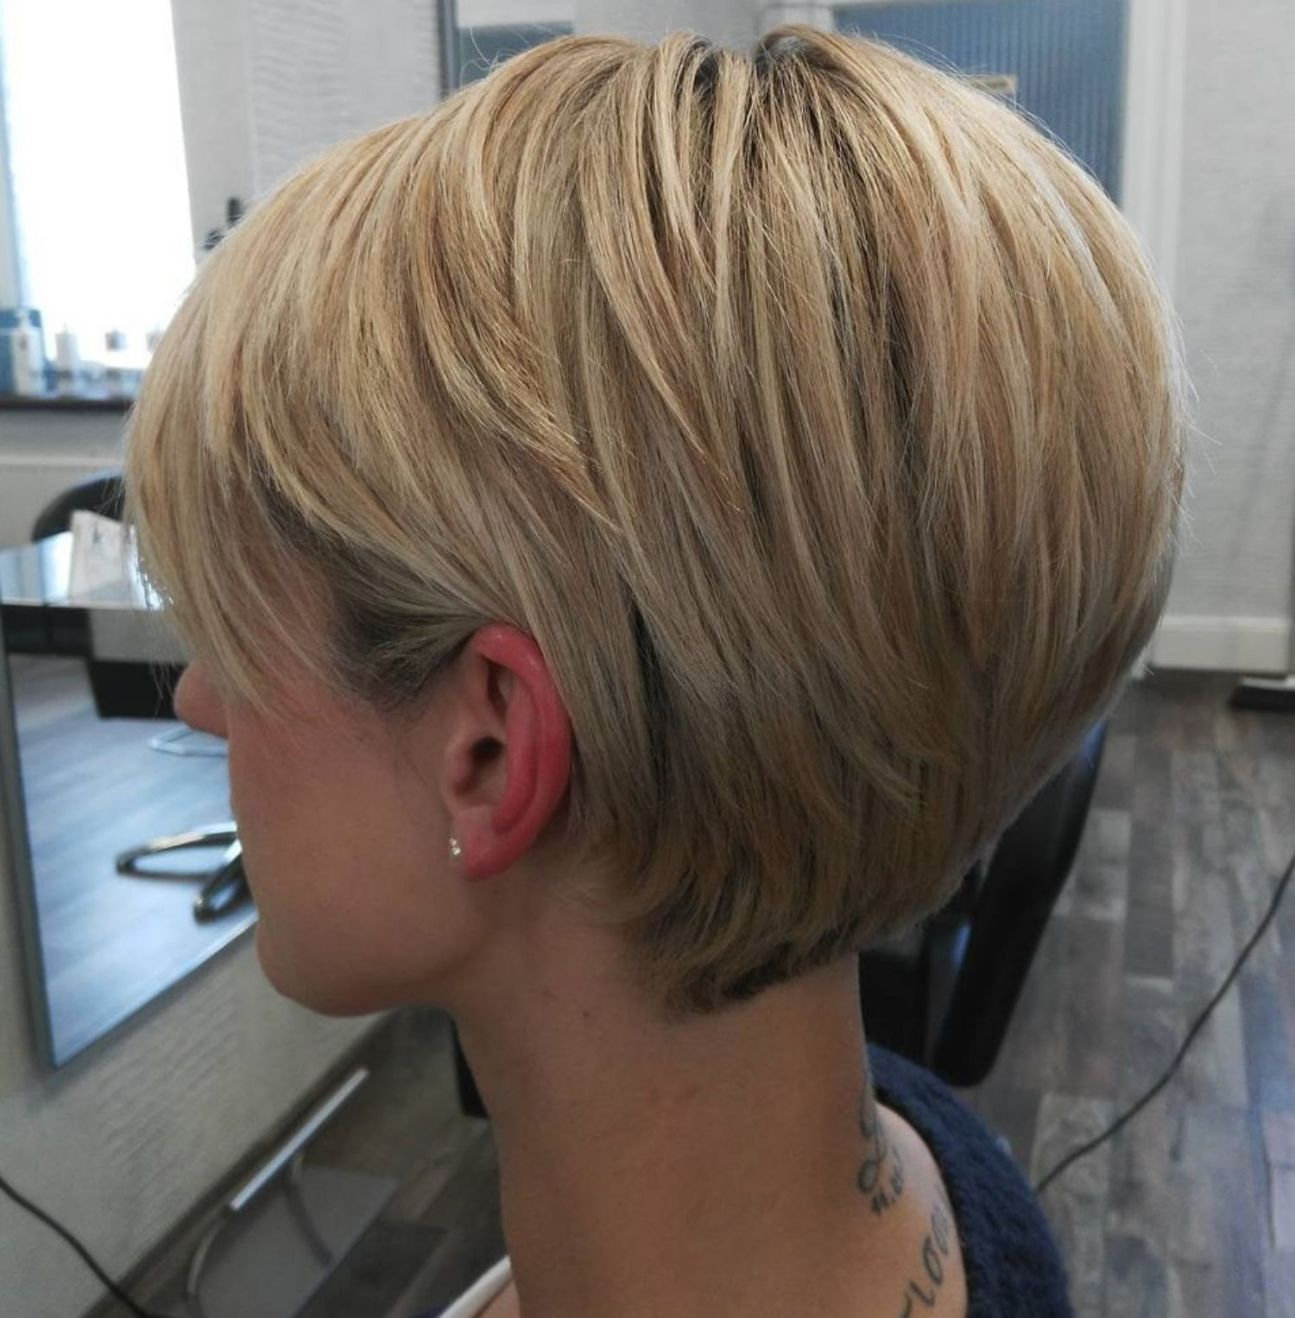 Tapered Pixie For Straight Thick Hair | Coupe de cheveux, Cheveux courts nuque, Coupe de cheveux ...